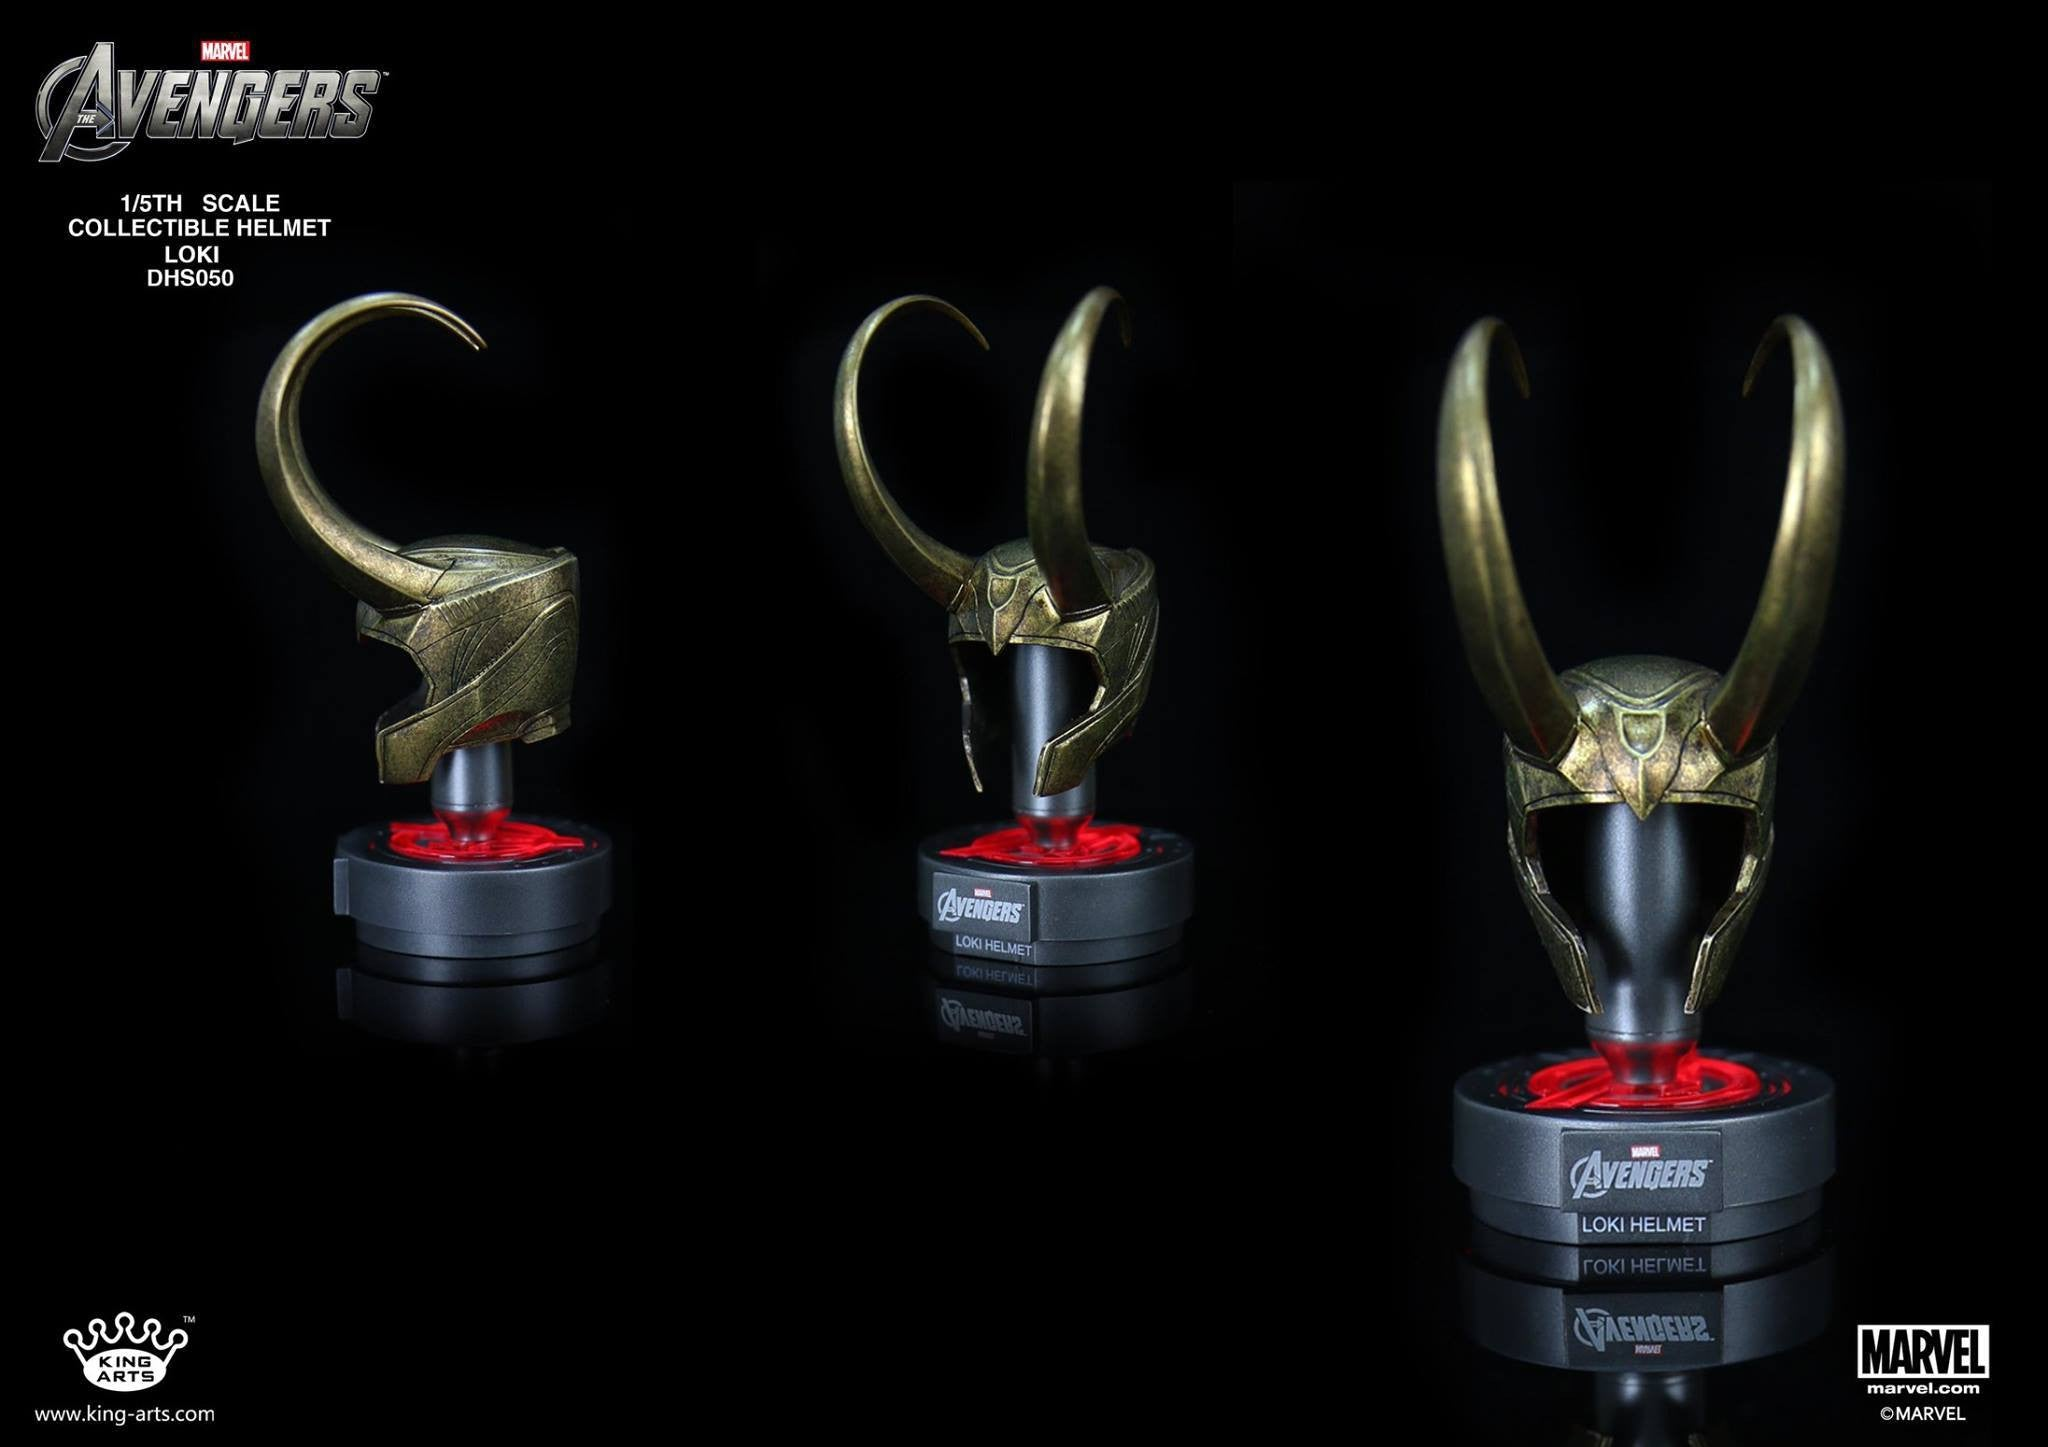 King Arts - DHS-S9 - Marvel Cinematic Universe - 1/5th Scale Series 9 (Set of 8) - Marvelous Toys - 6